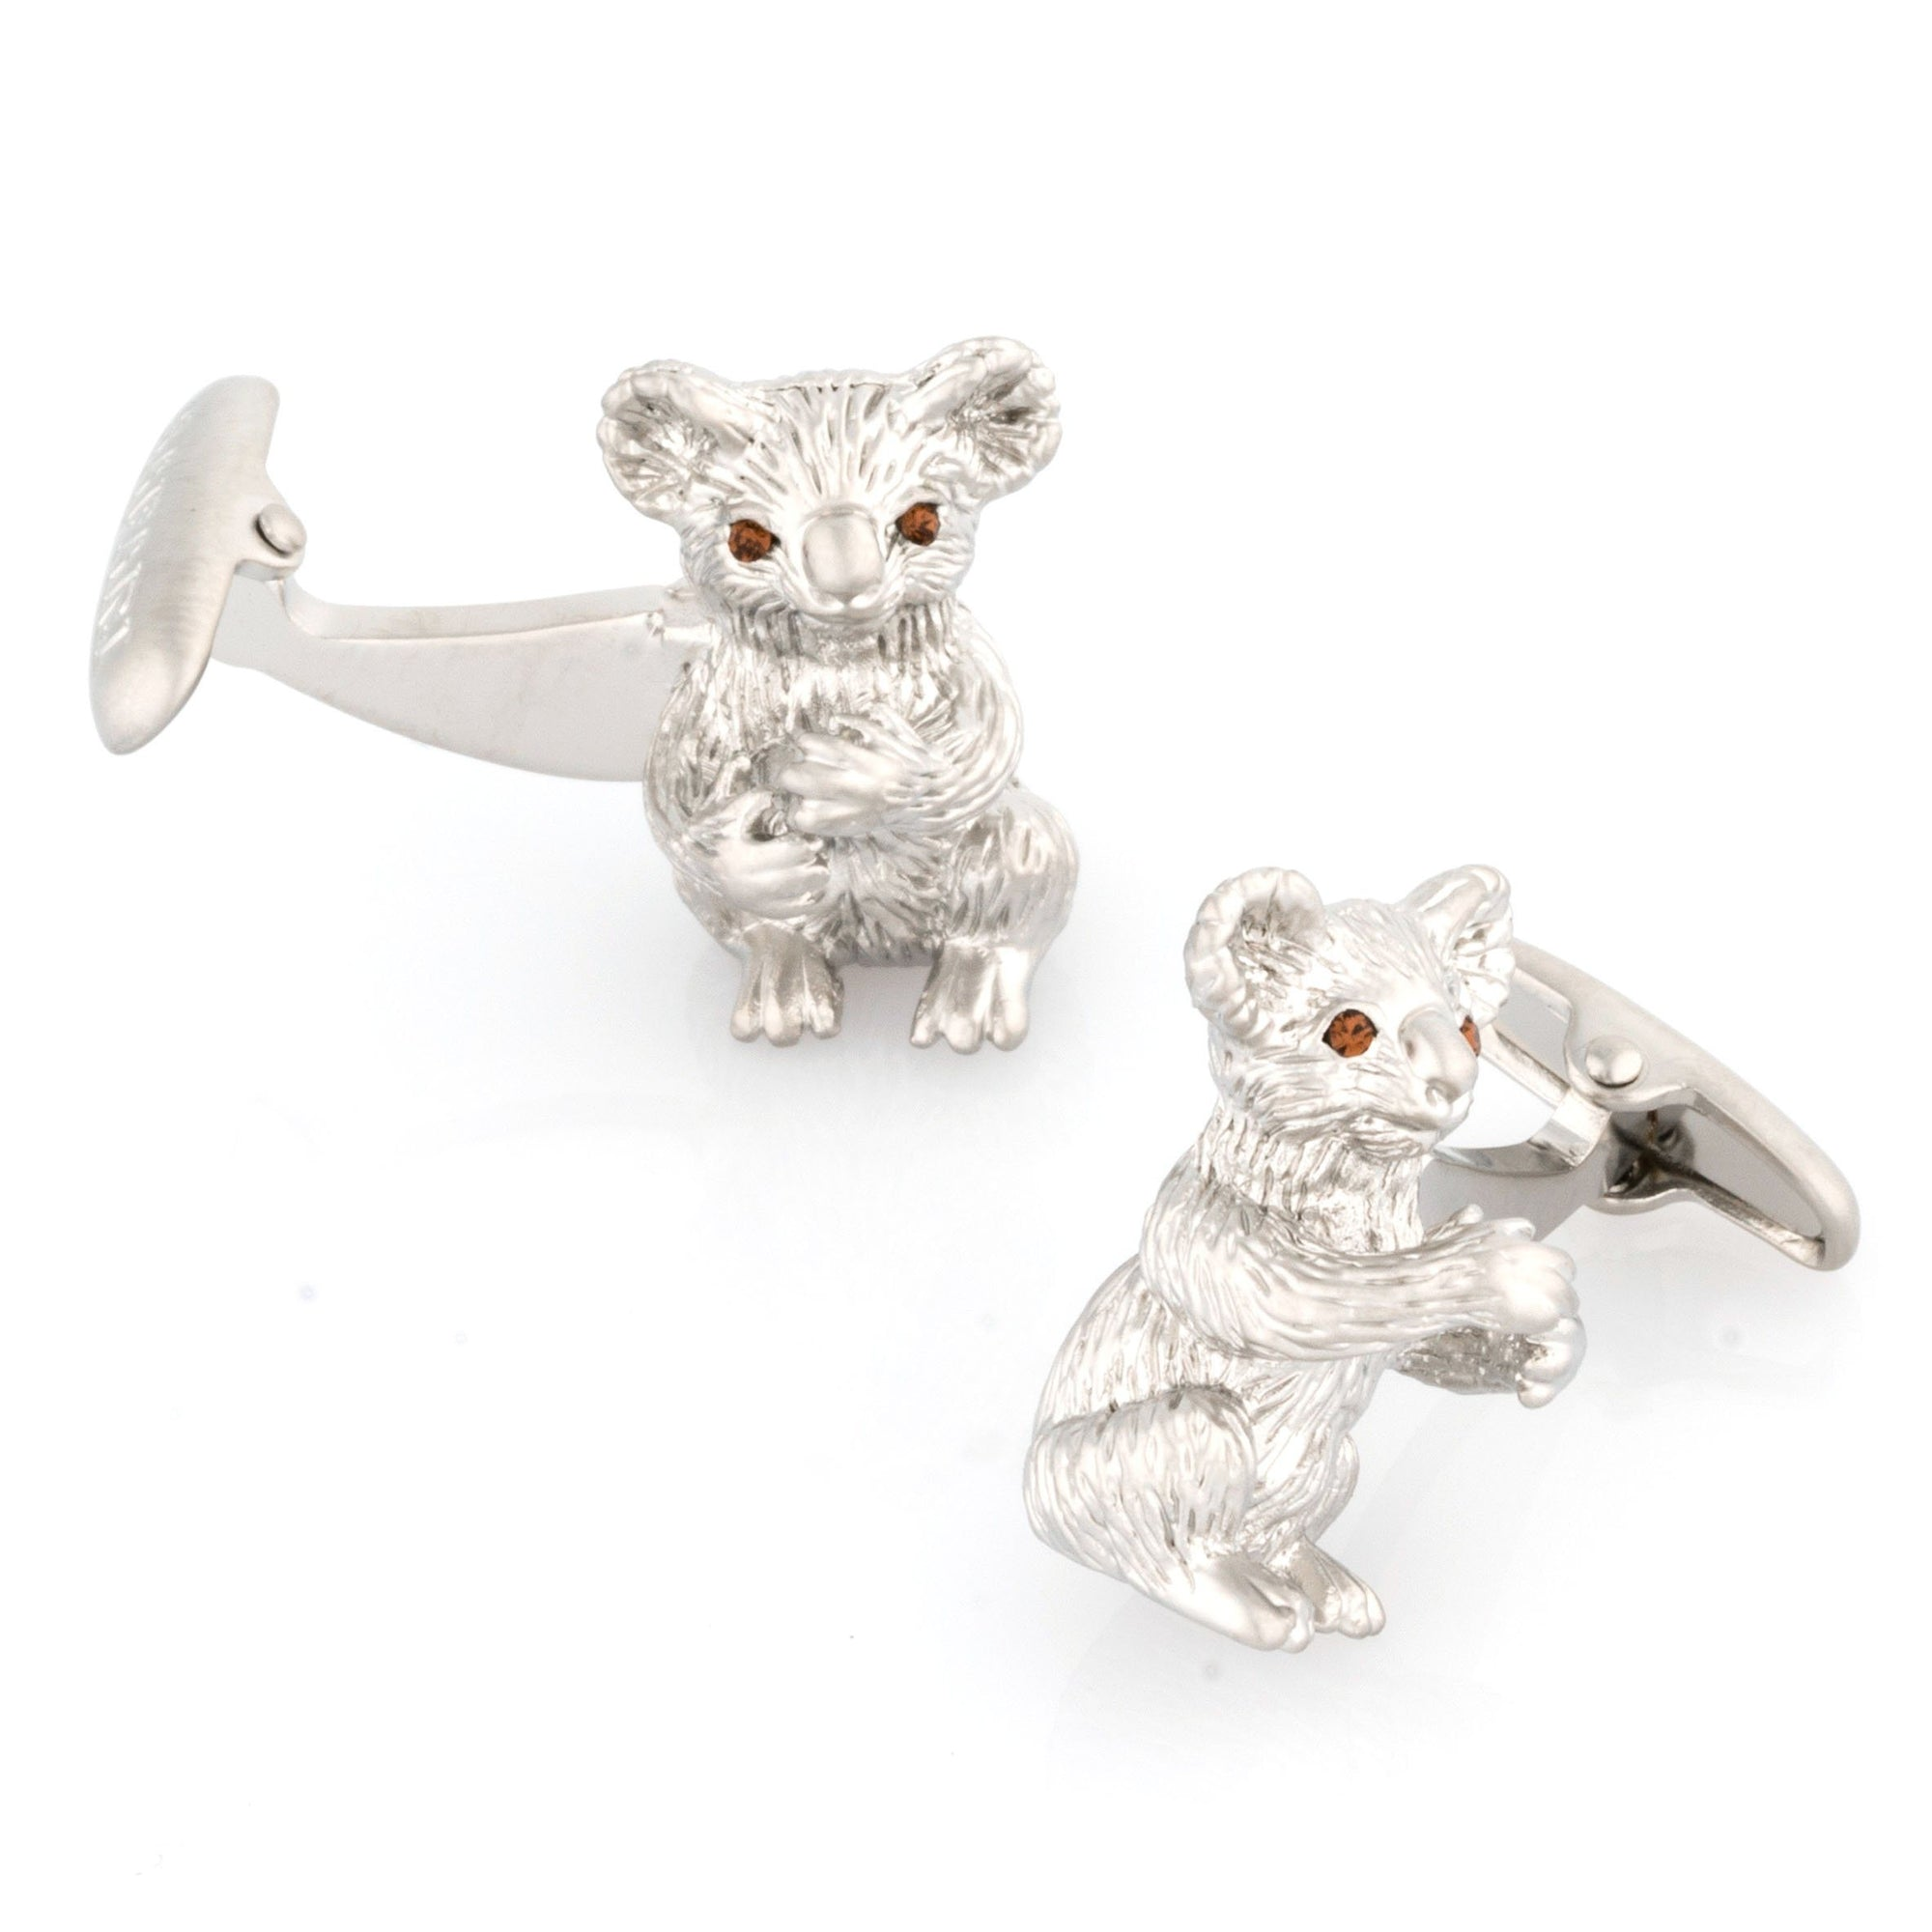 Silver Koala Cufflinks with Crystal Eyes Novelty Cufflinks Clinks Australia Silver Koala Cufflinks with Crystal Eyes